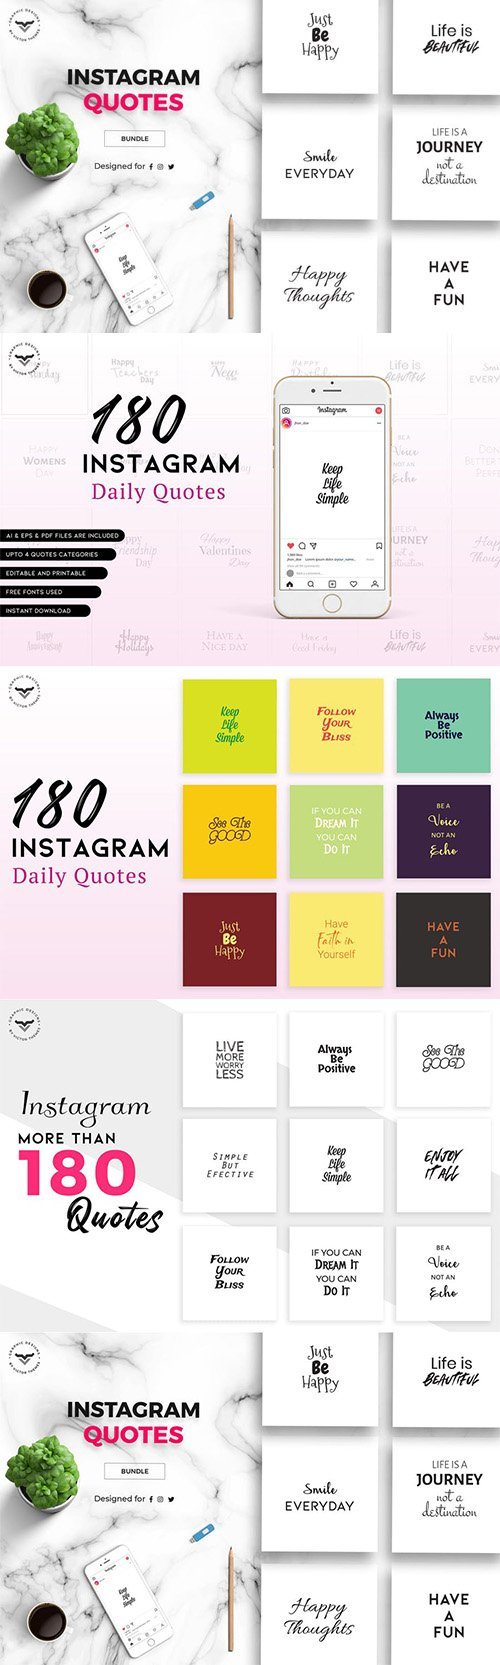 Instagram Quotes - Social Media Template